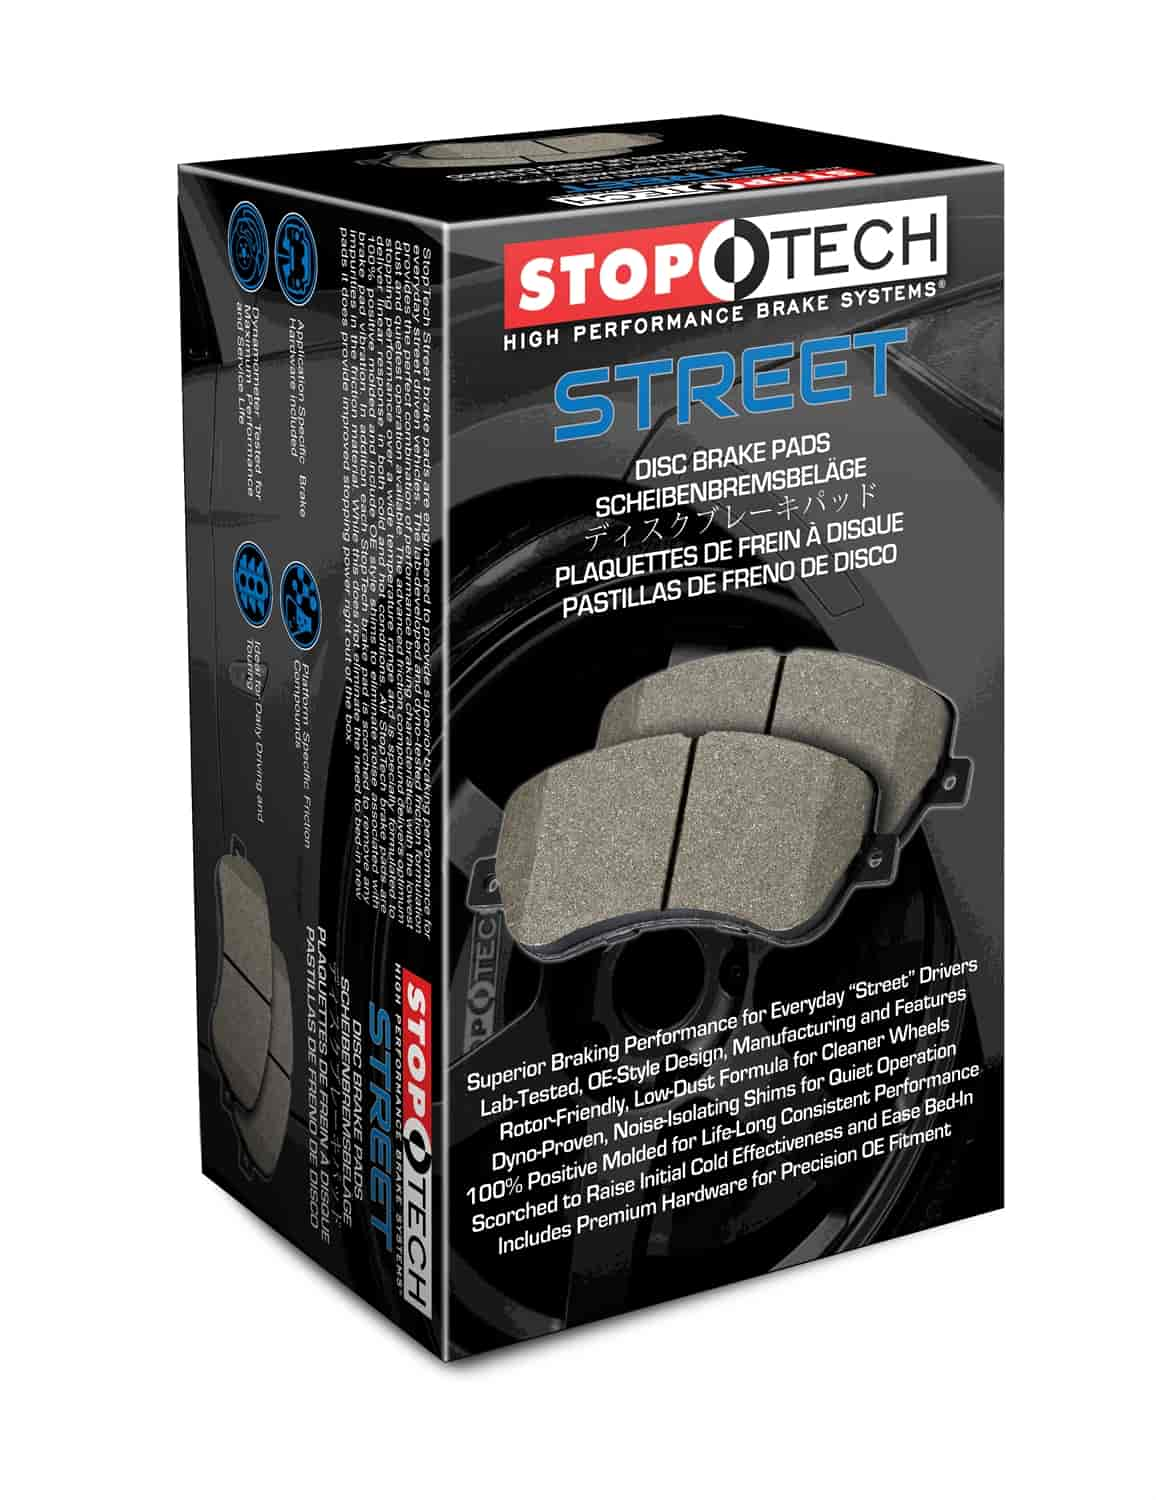 StopTech 308-02660